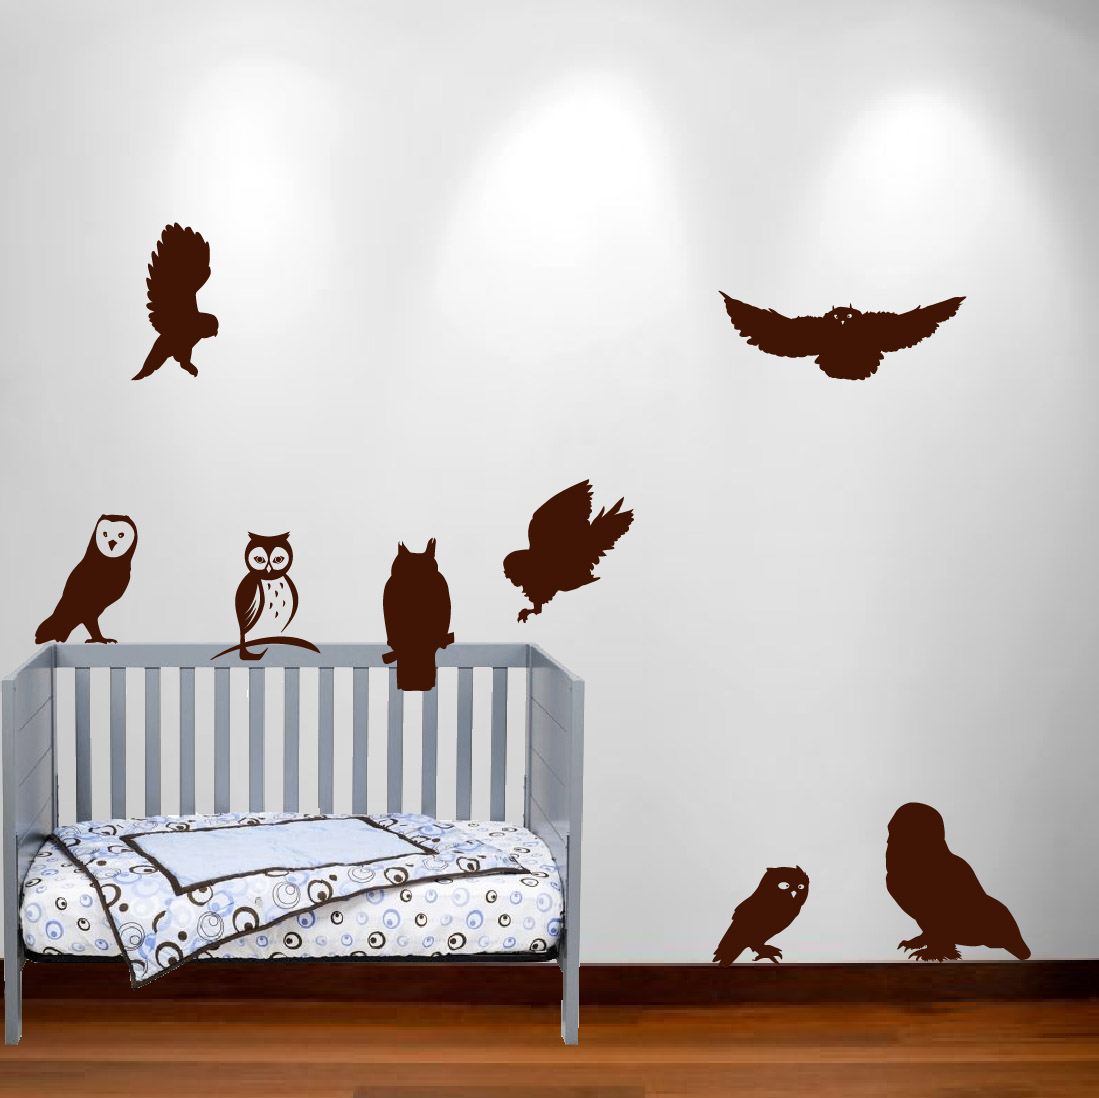 Birch tree winter forest vinyl wall decal nursery owl decal set 1251g amipublicfo Images